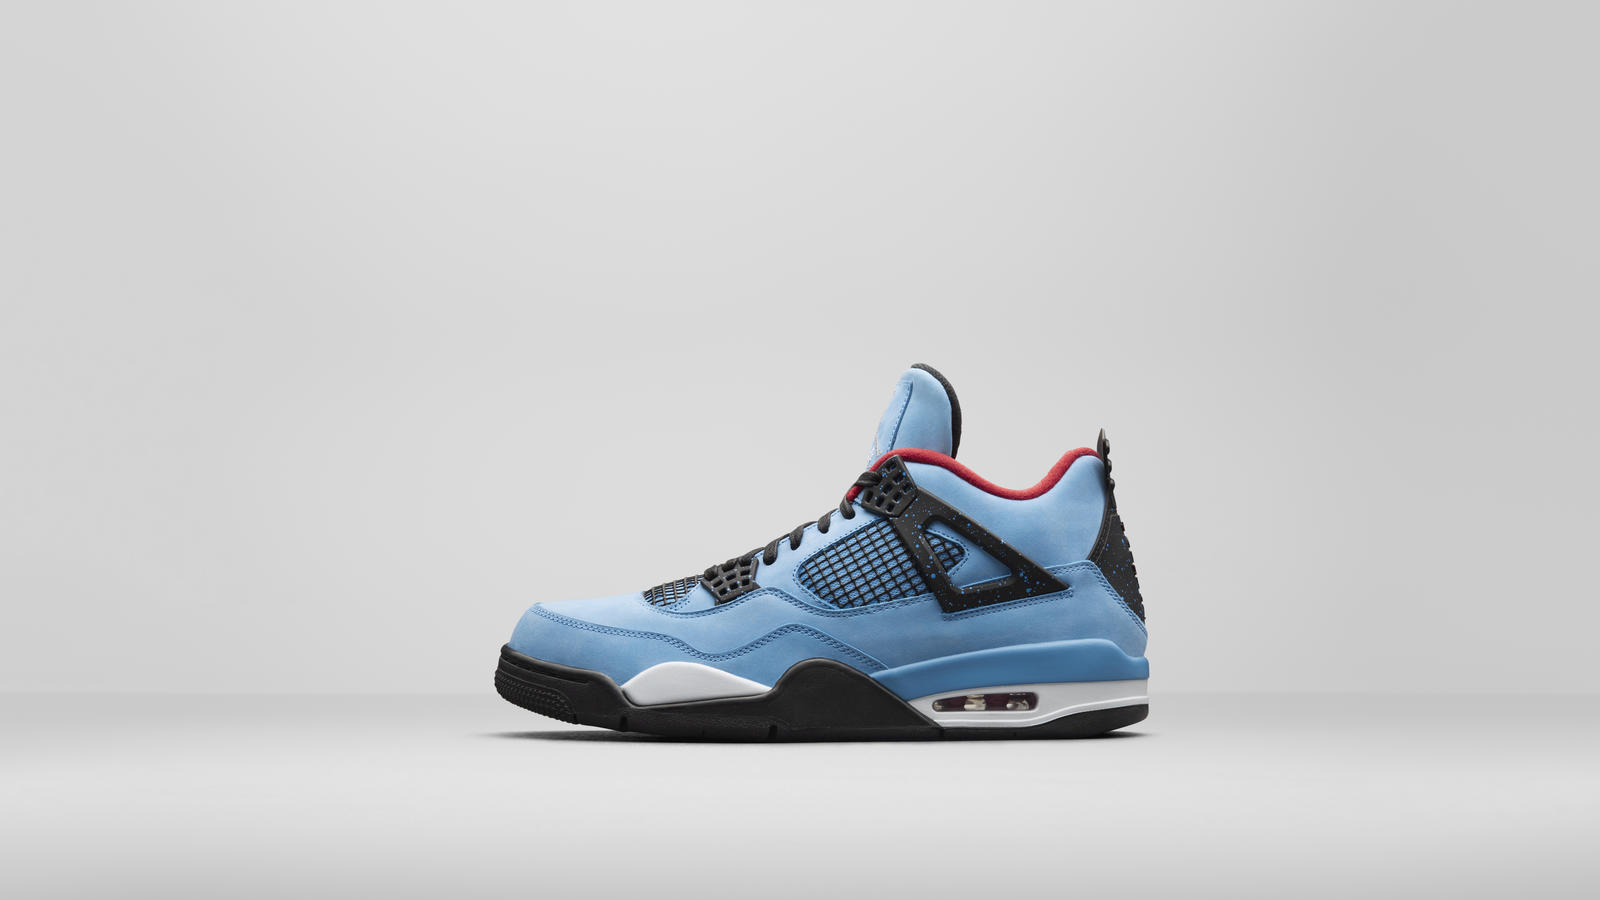 7a17599250a2c9 Air Jordan IV Travis Scott - Nike News